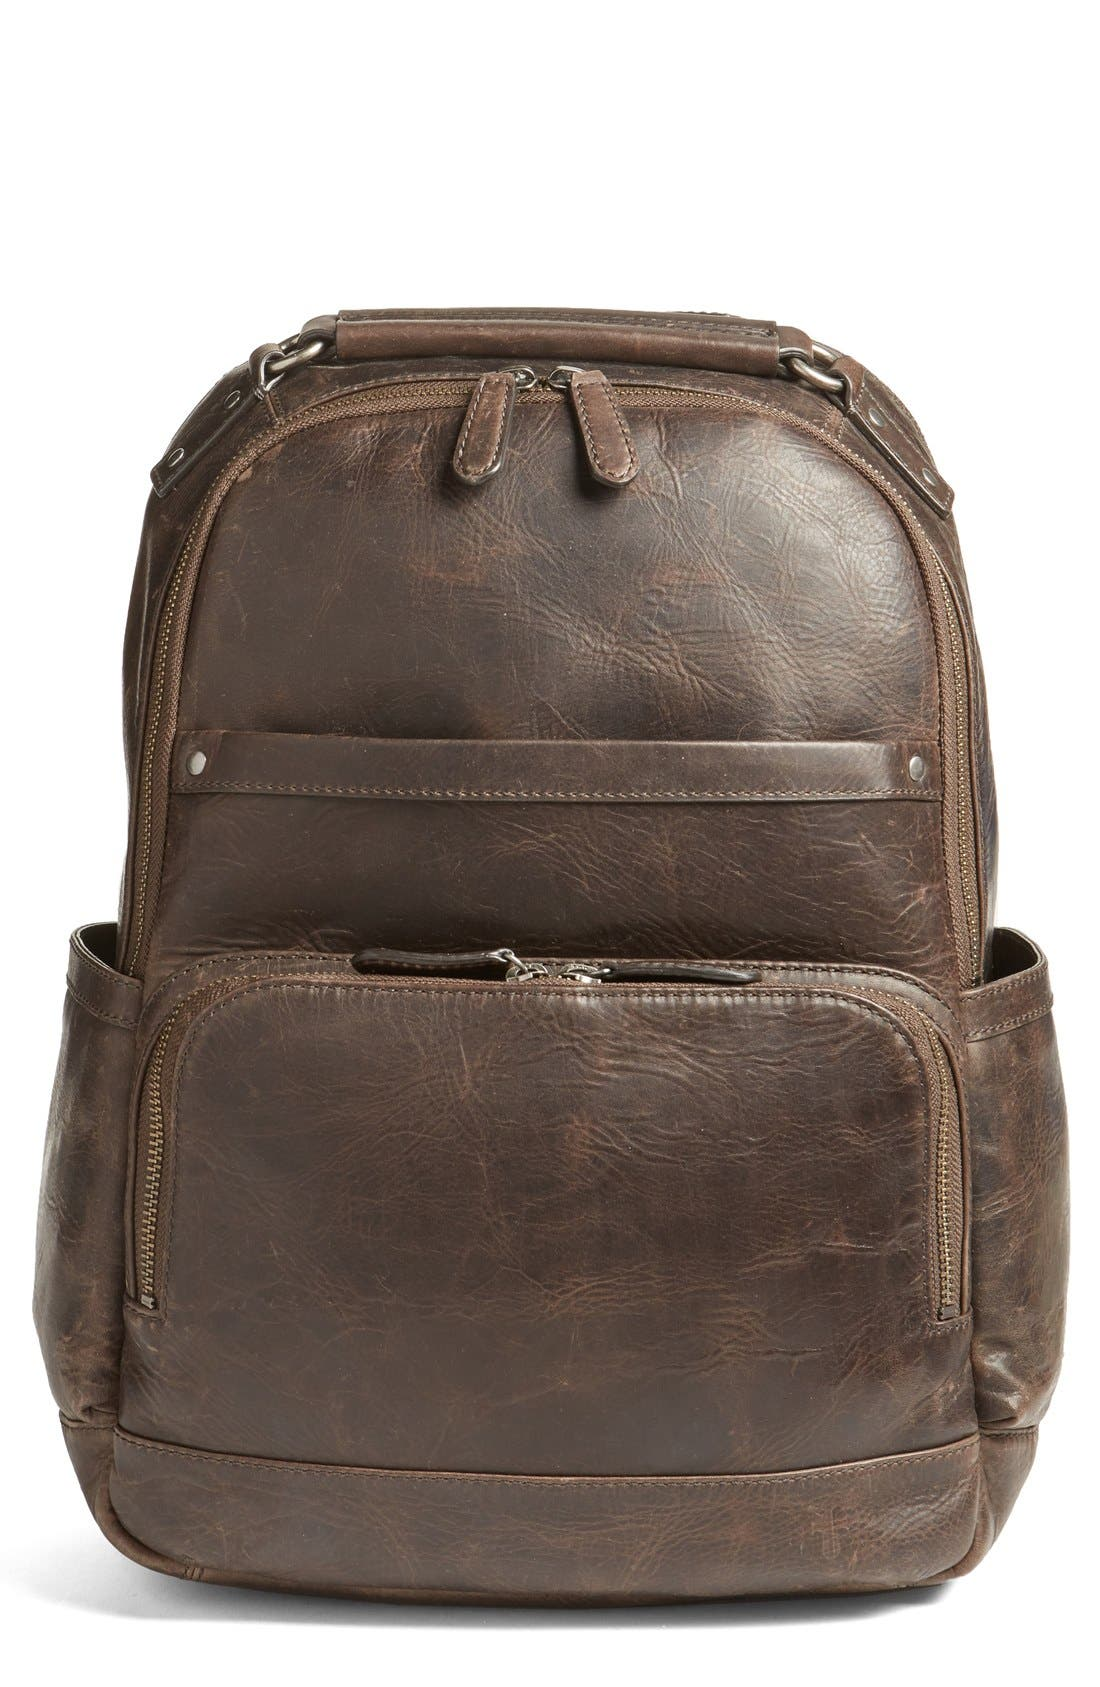 FRYE 'Logan' Leather Backpack, Main, color, SLATE